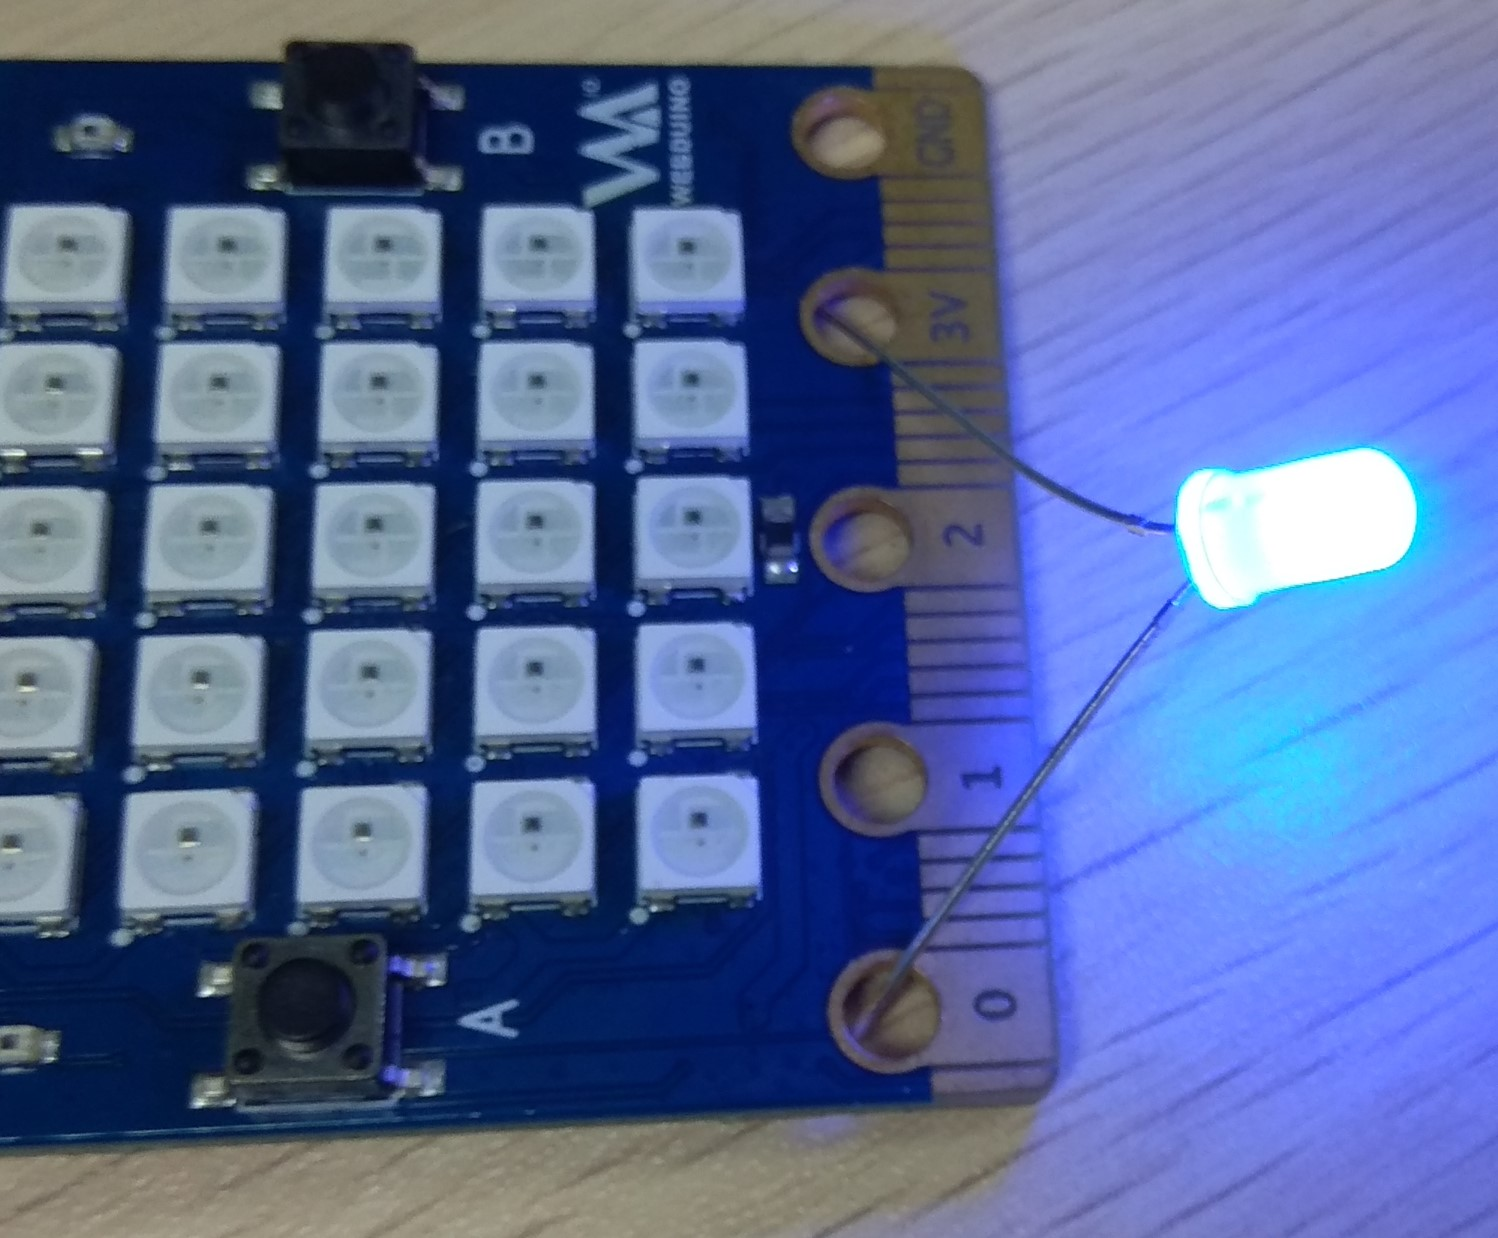 BPI:bit Webduino and arduino board with EPS32 for STEAM education